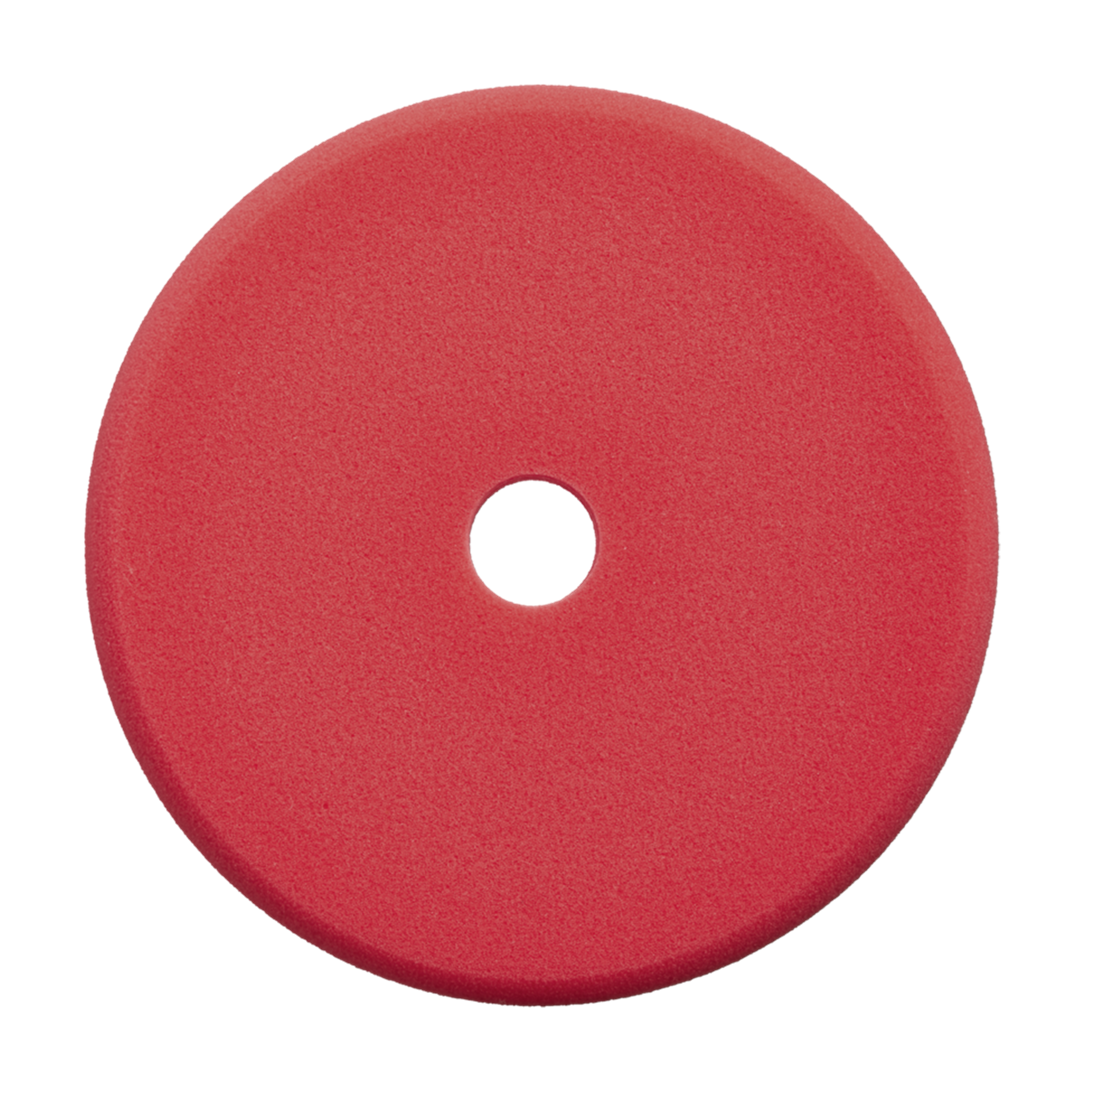 Sonax Polishing Pad Red 165 Dual Action Cut Pad